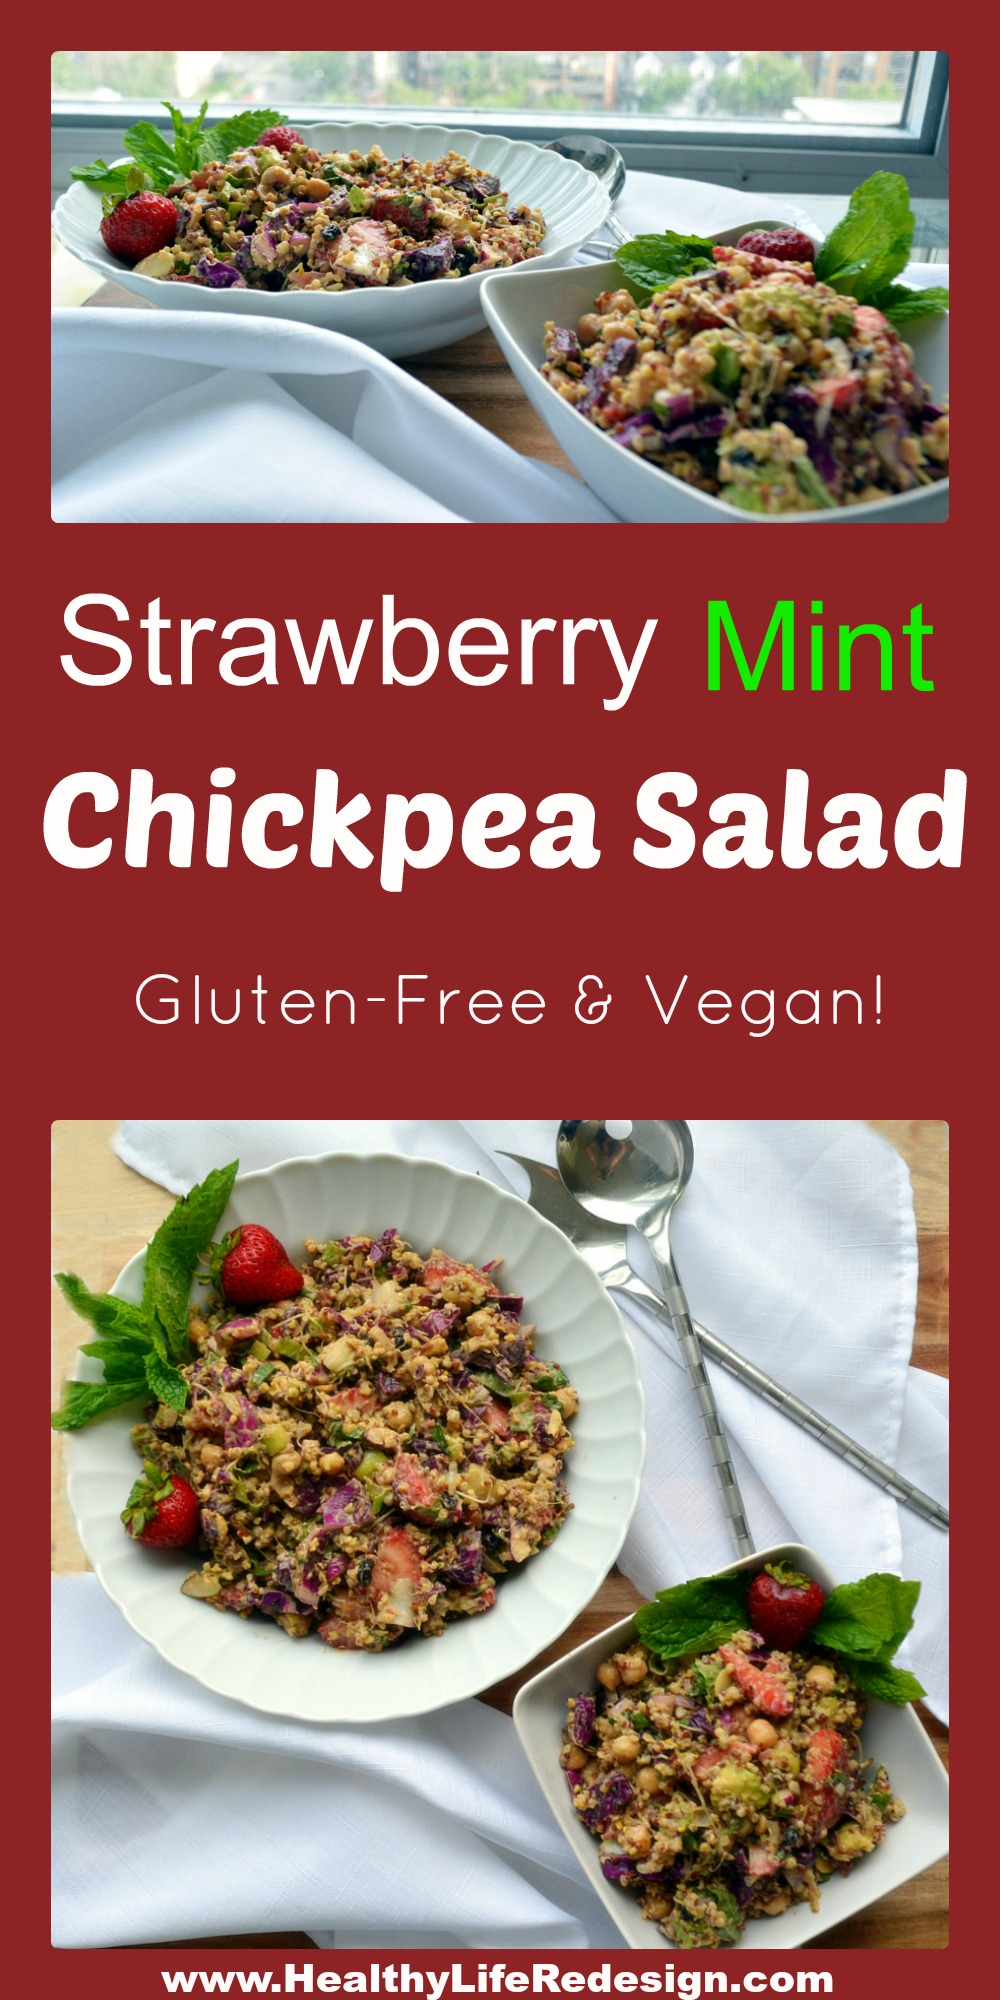 Strawberry Mint Chickpea Salad - Perfect for a picnic, camping or a road trip! Also makes a delicious gluten and dairy-free packed lunch!